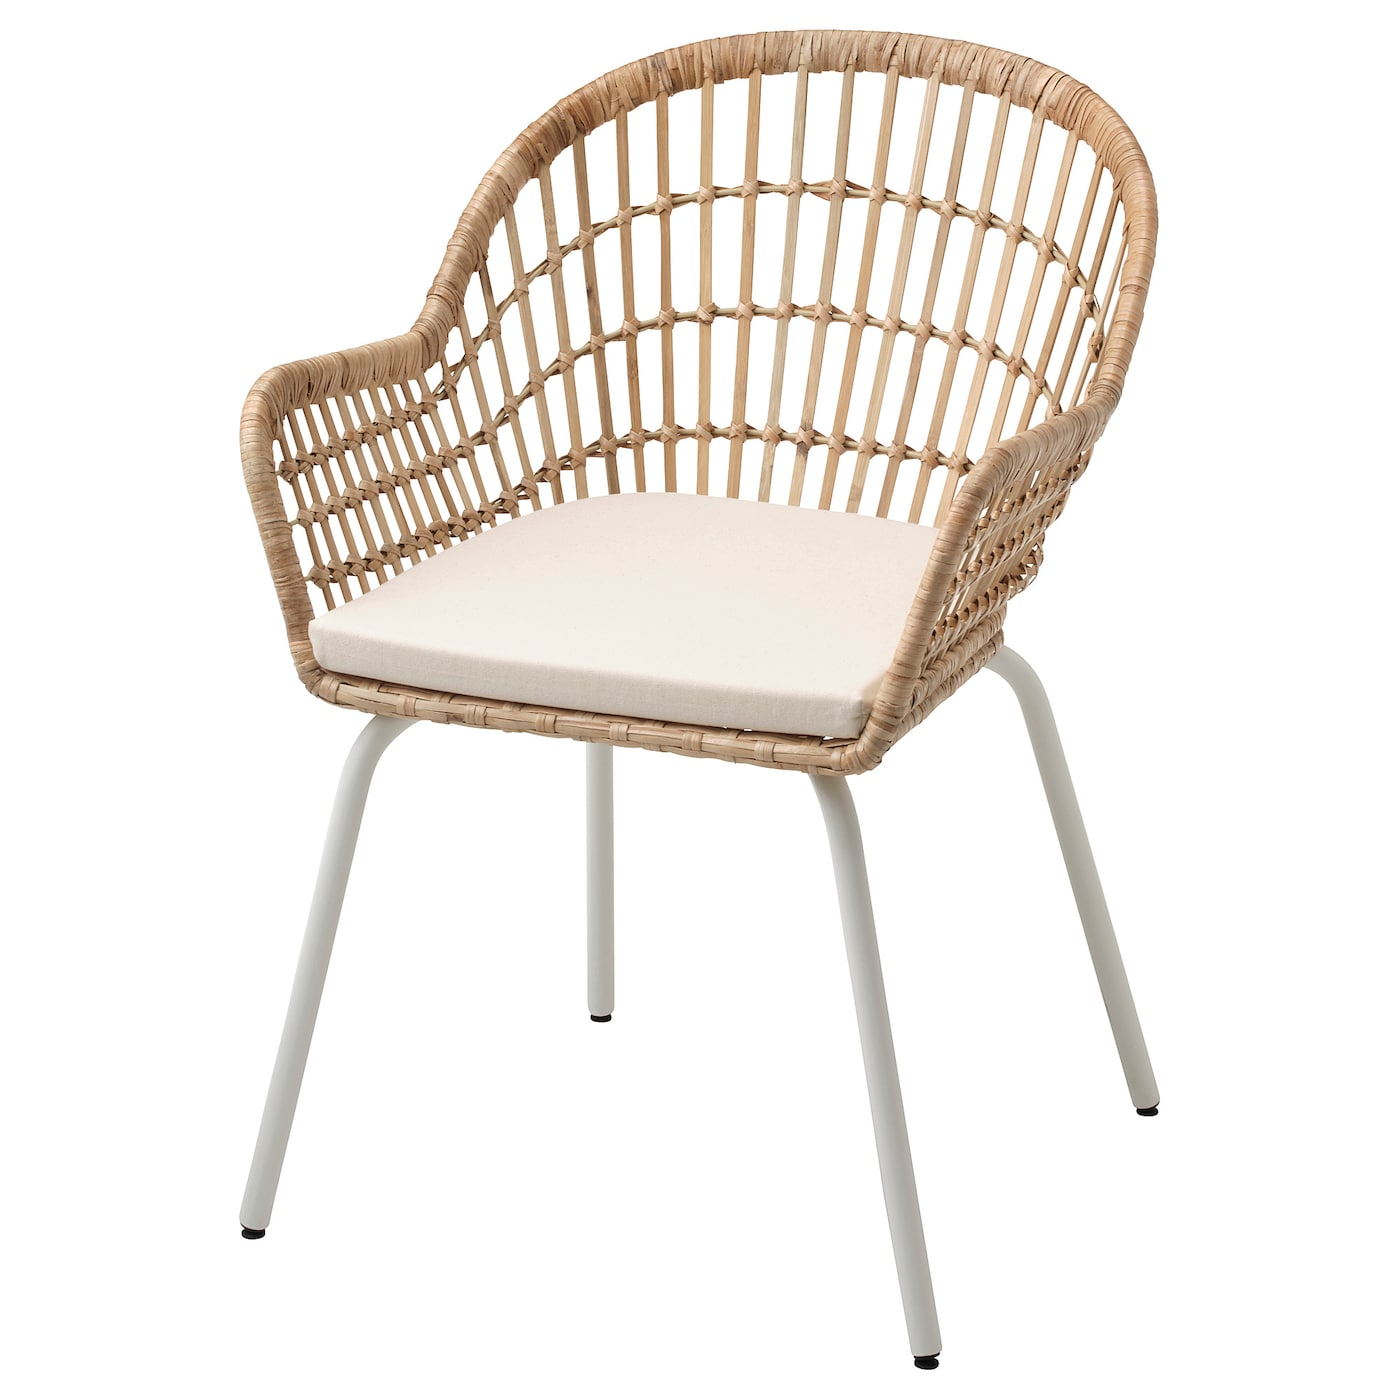 NILSOVE / NORNA Chair with chair pad - rattan white/Laila natural